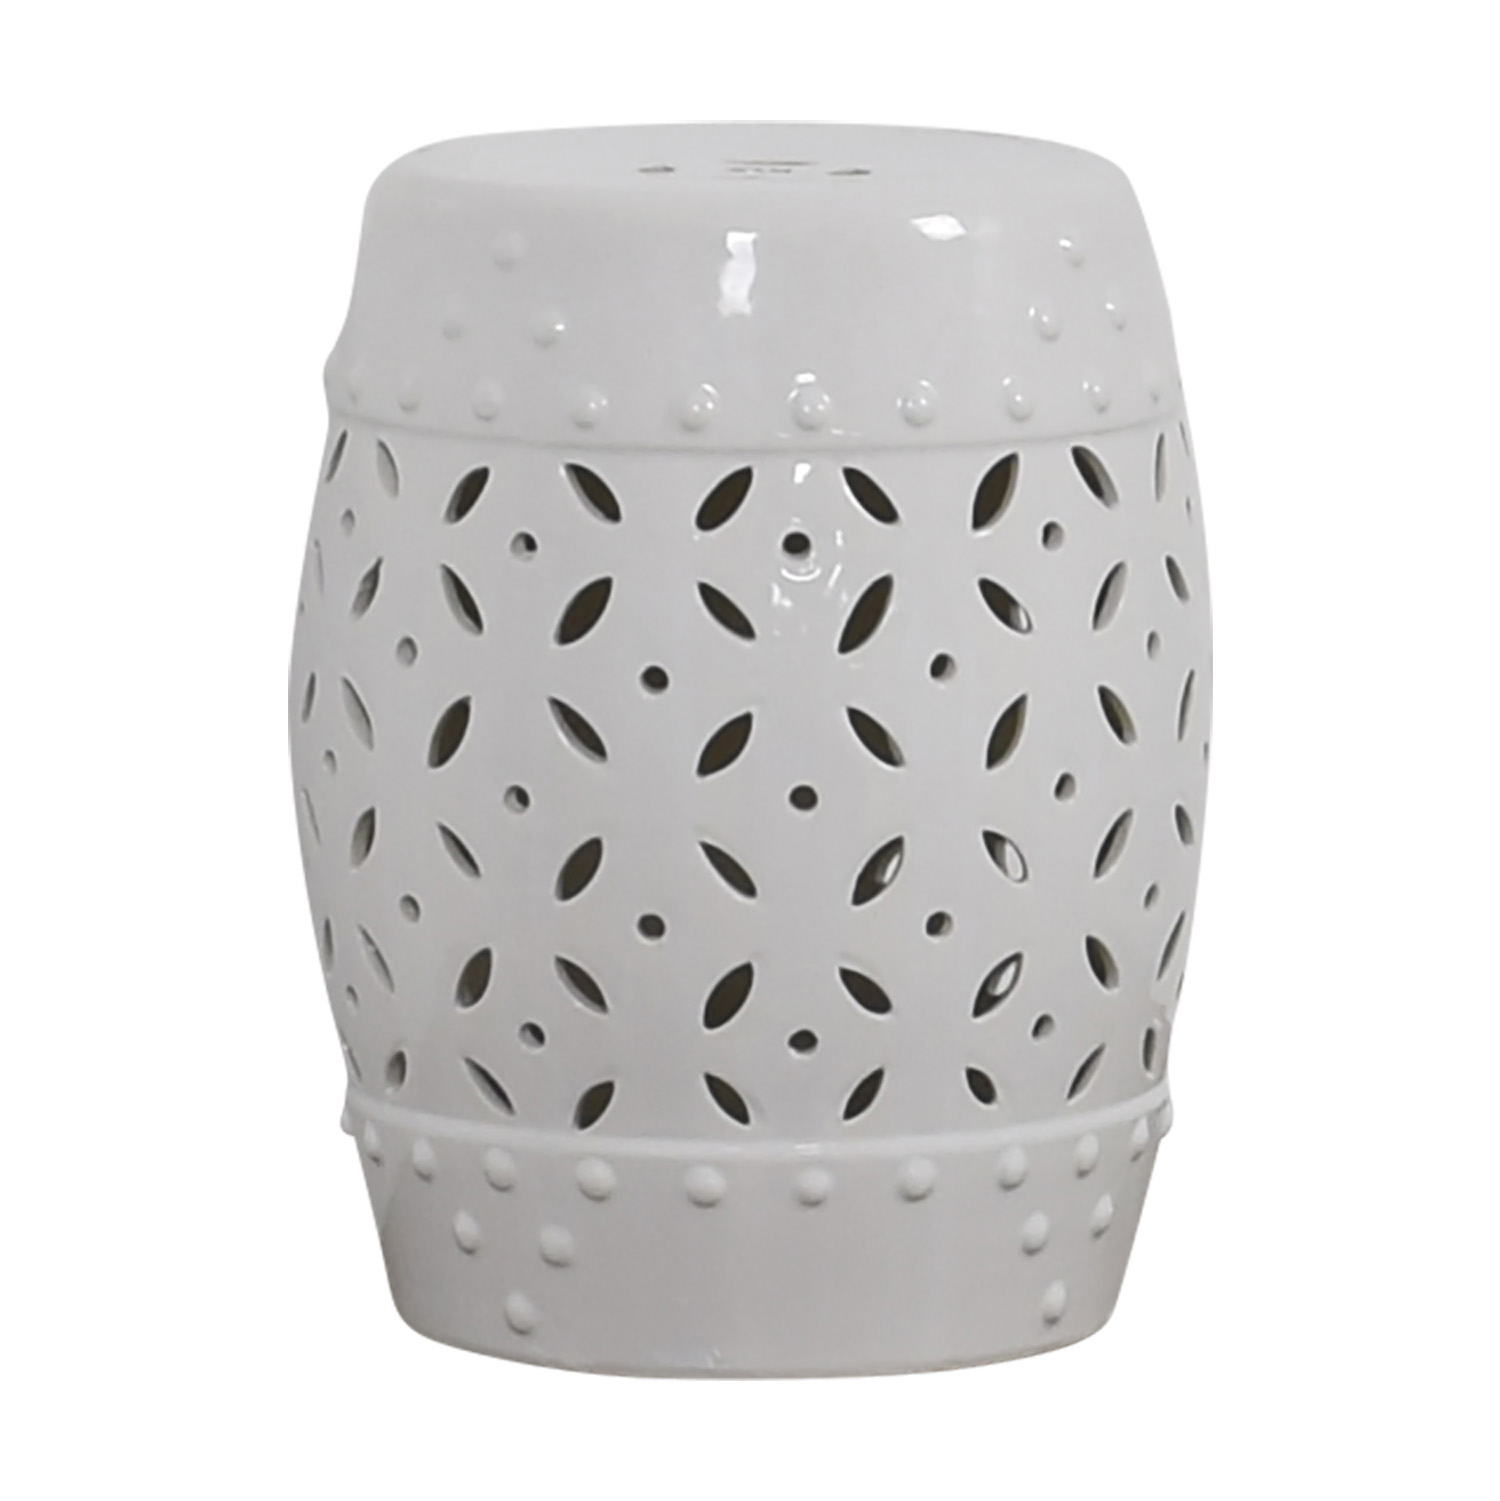 Pier 1 Imports Pier 1 Imports White Drum Accent Table nj